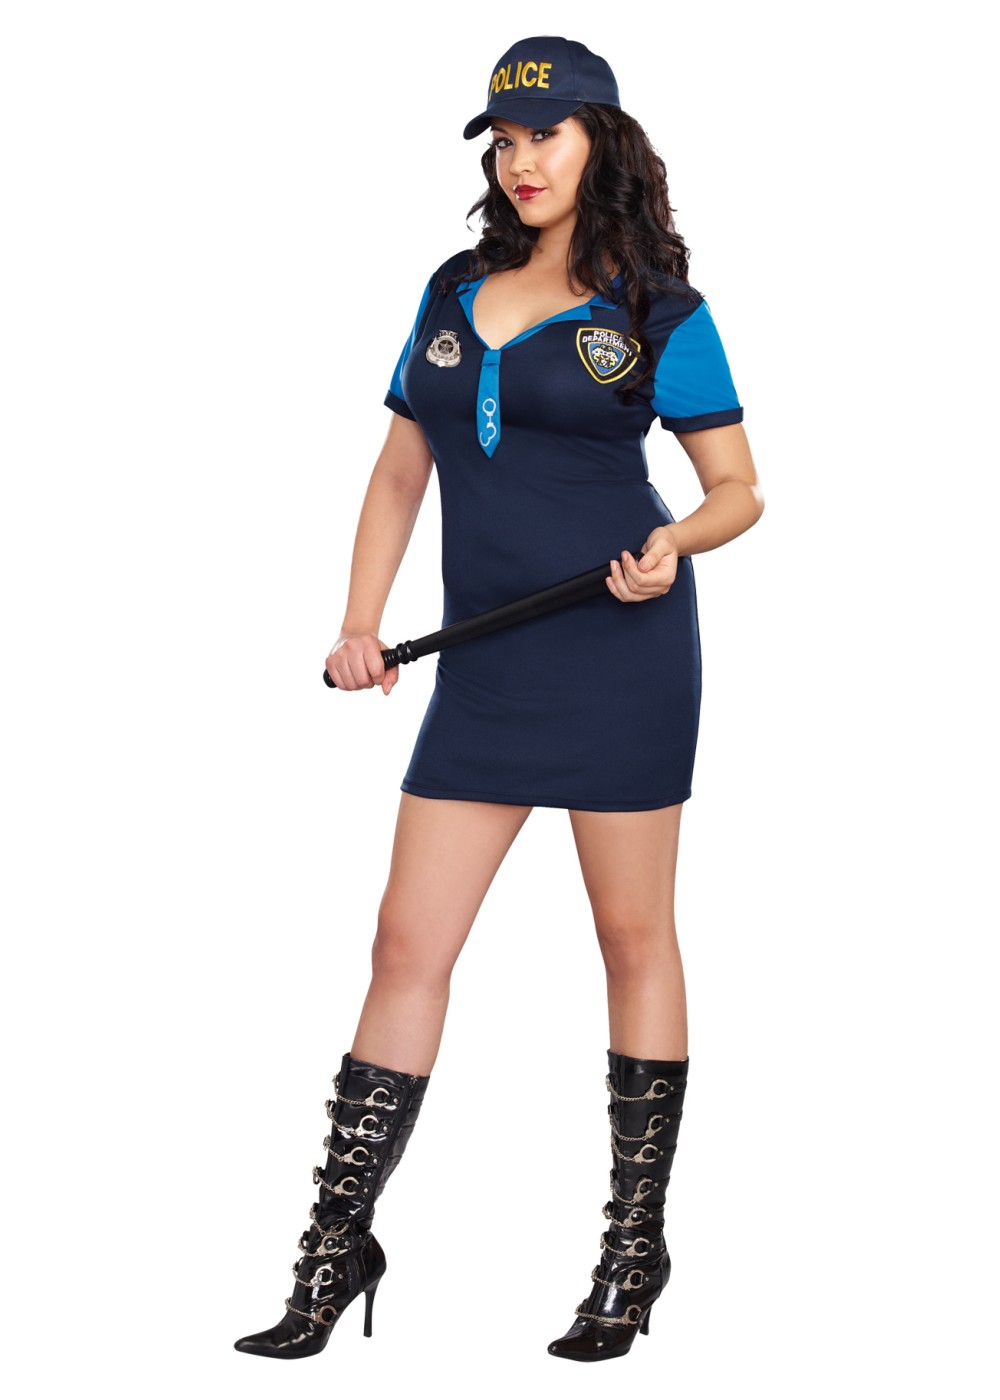 Dirty Detective Plus size Women Costume  Professional Costumes